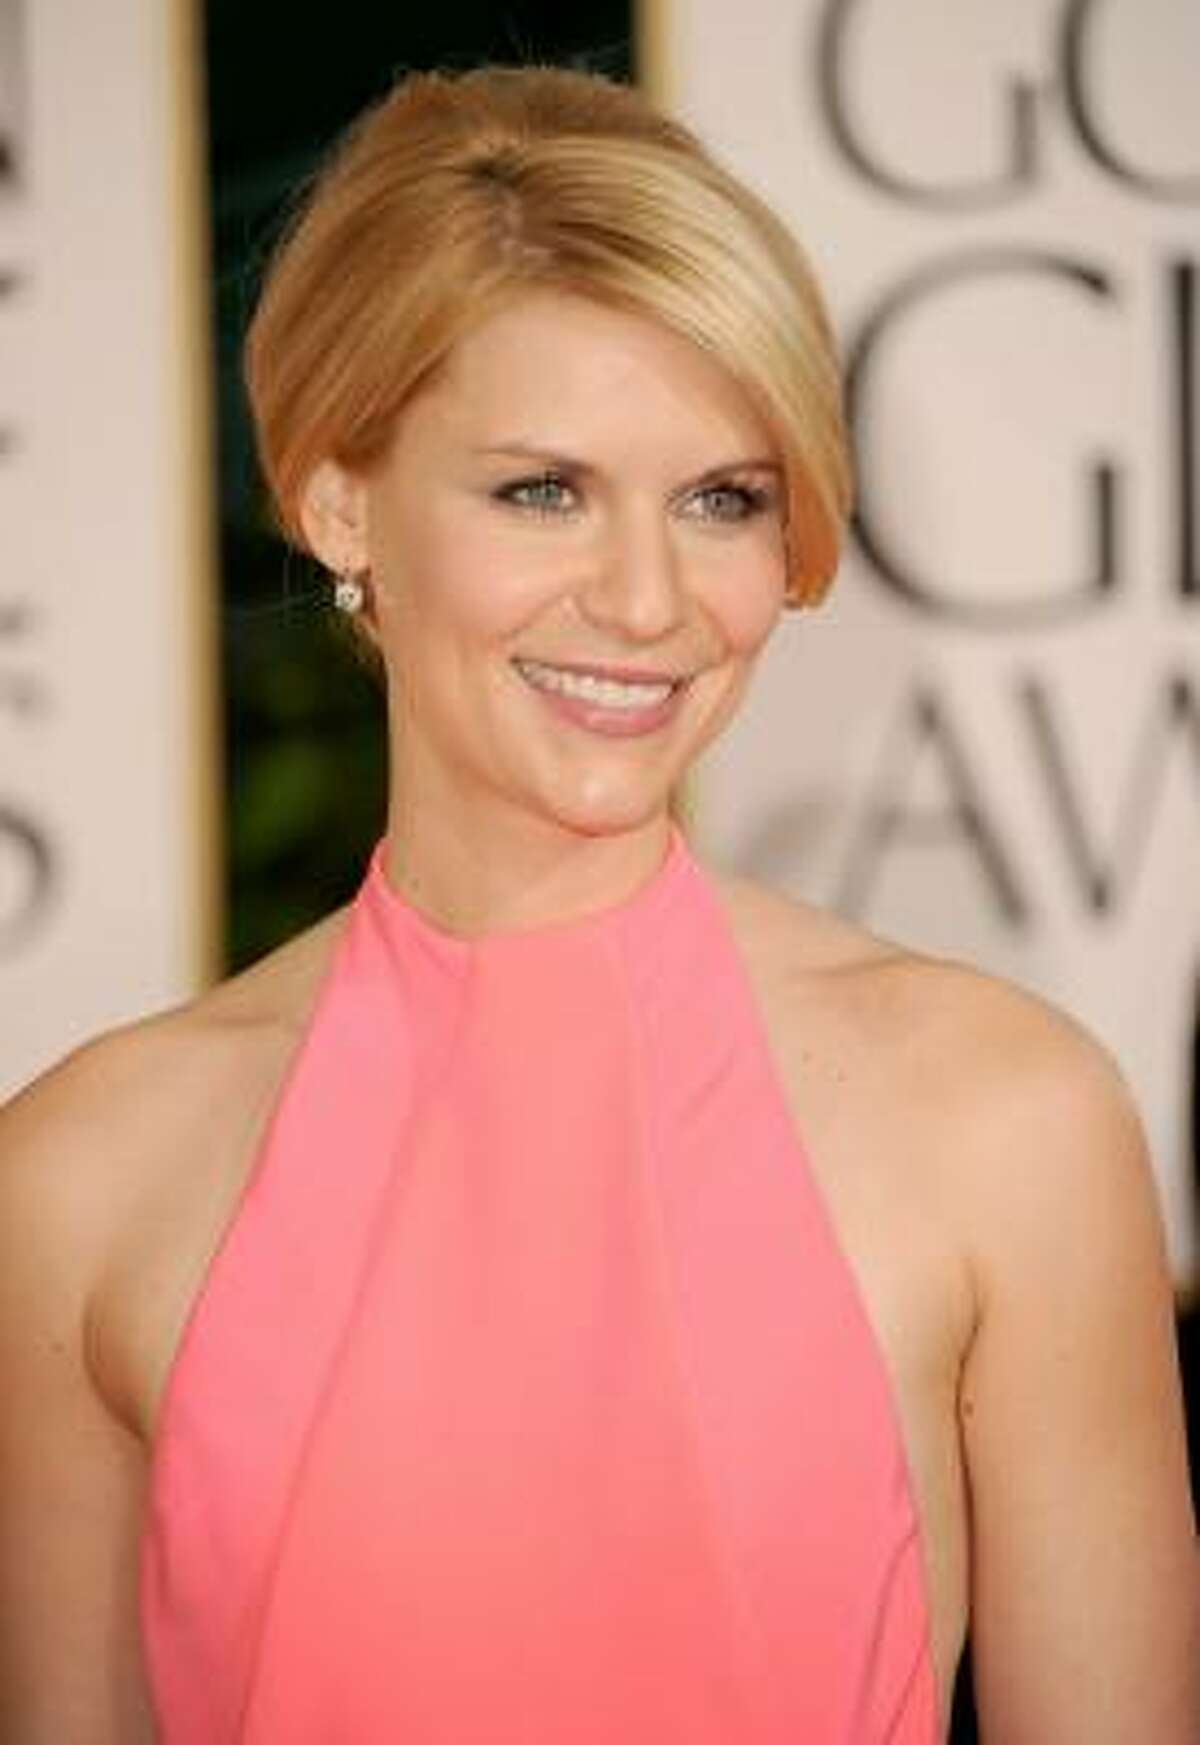 Claire Danes walked away from pursuing a degree in psychology at Yale University to have a chance at a long acting career.